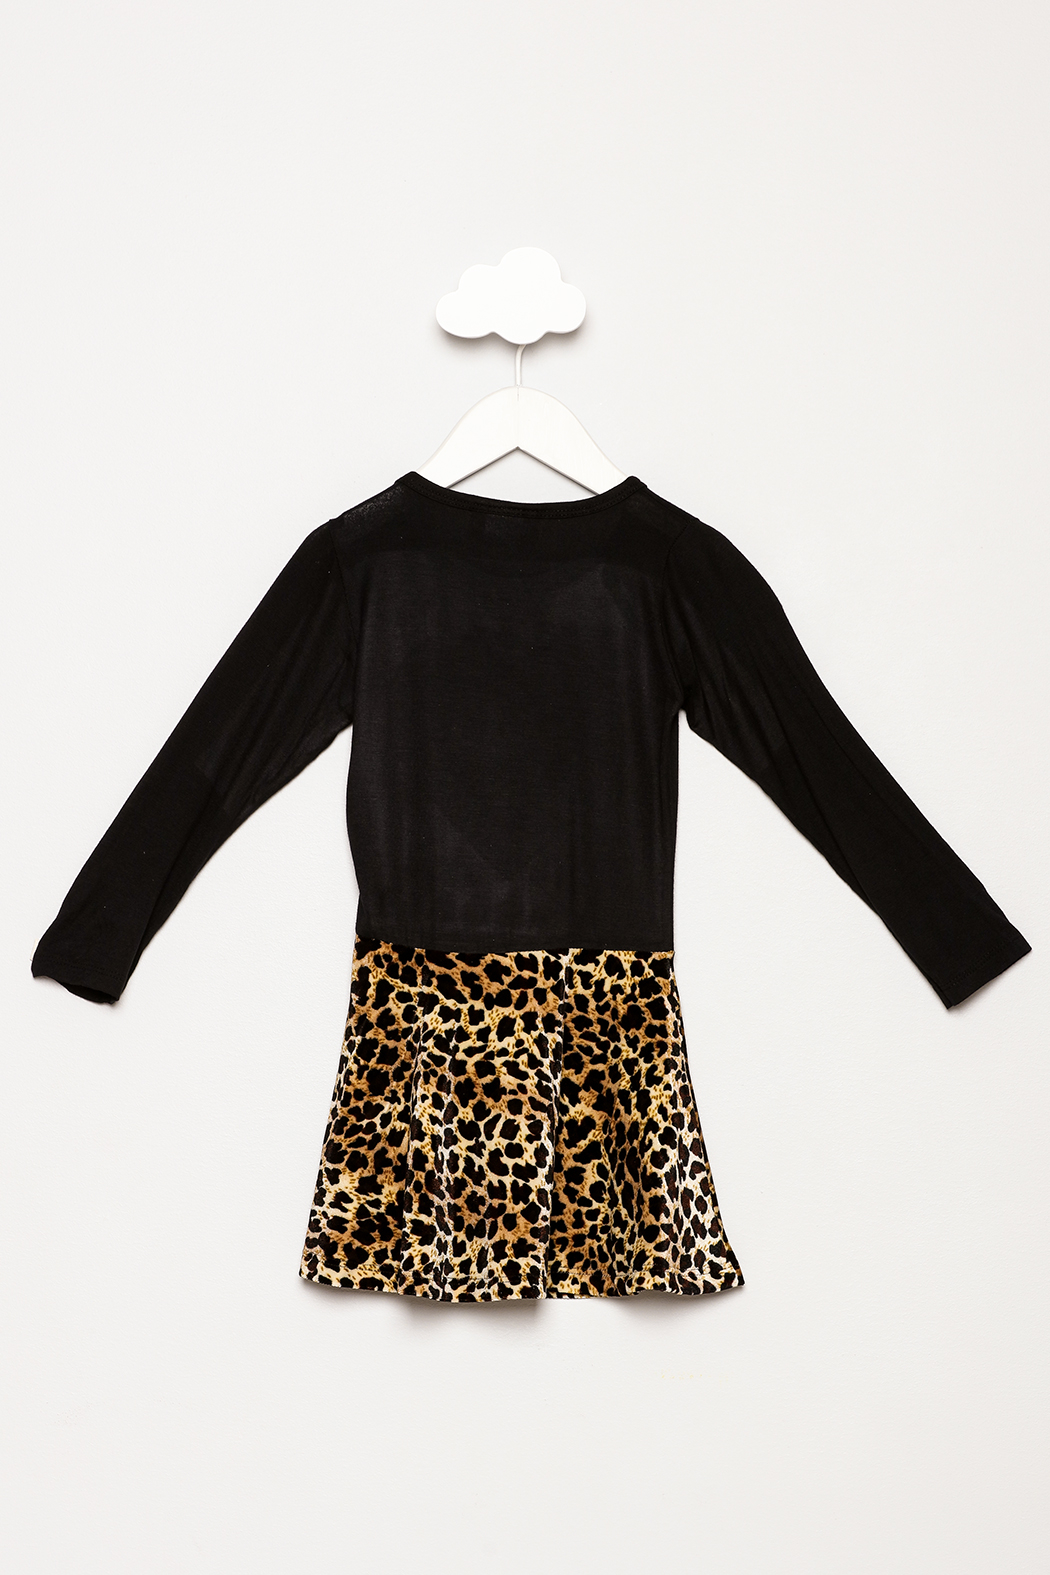 Dori Creations Heart Leopard Print Dress - Back Cropped Image